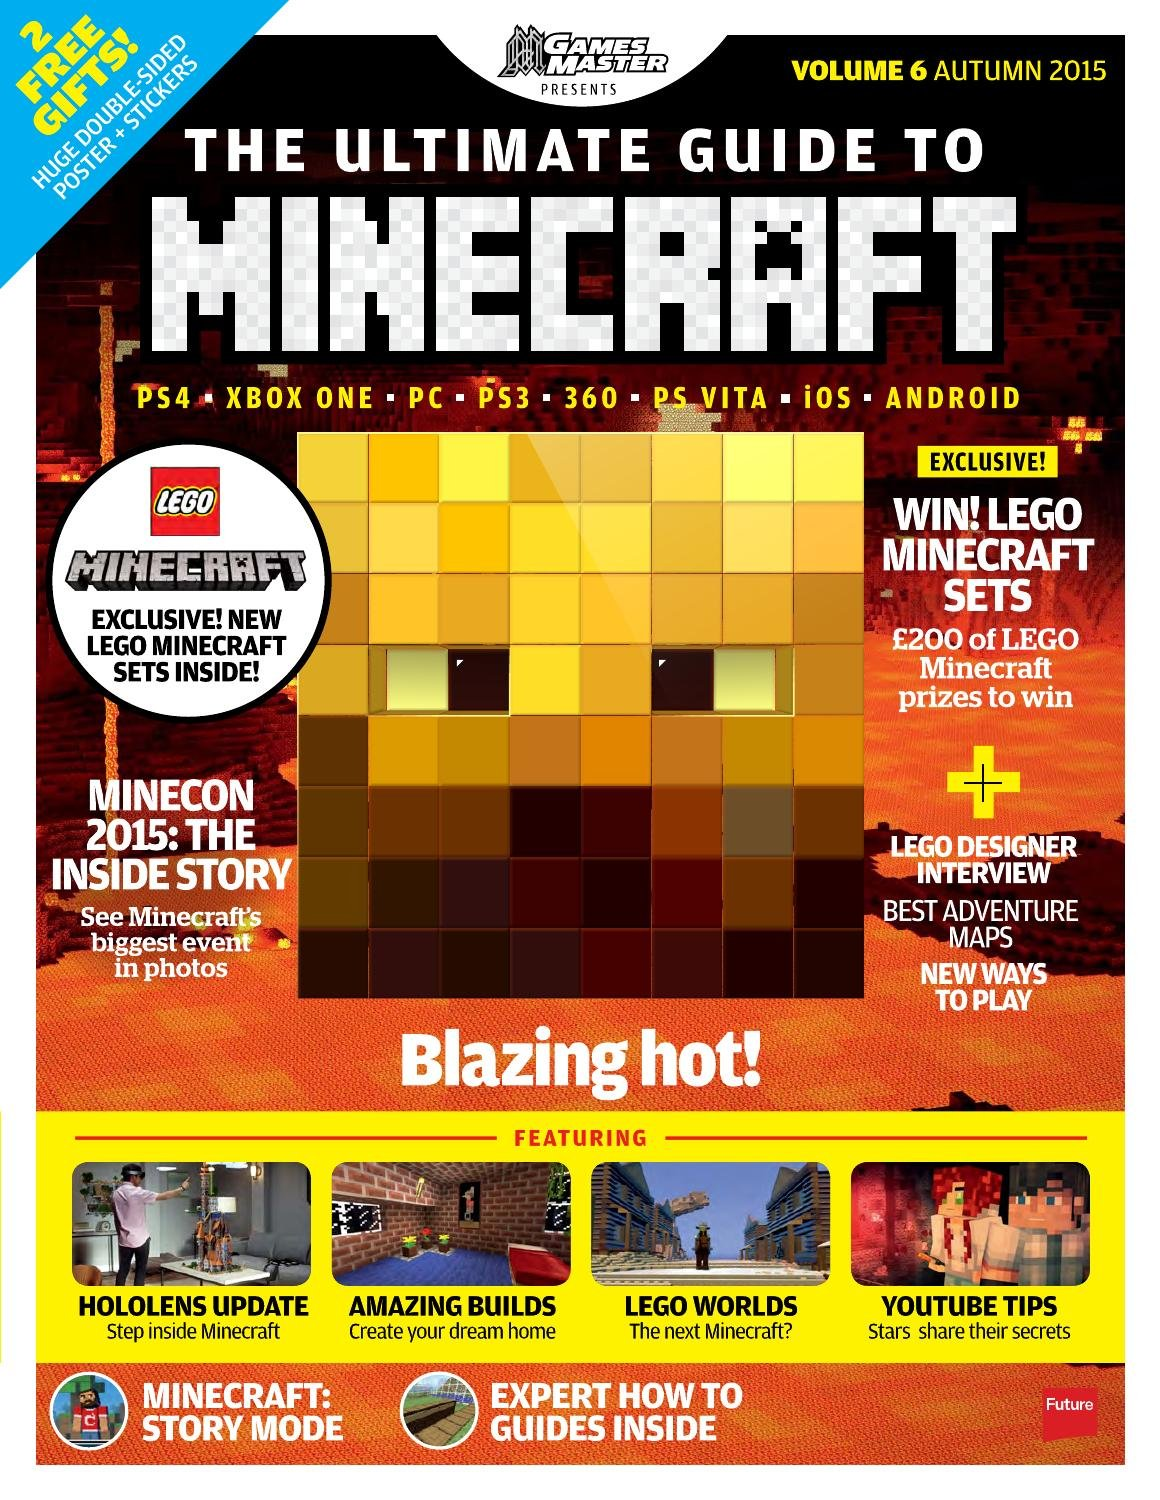 GamesMaster Presents: The Ultimate Guide to Minecraft Vol.06 (Autumn 2015)